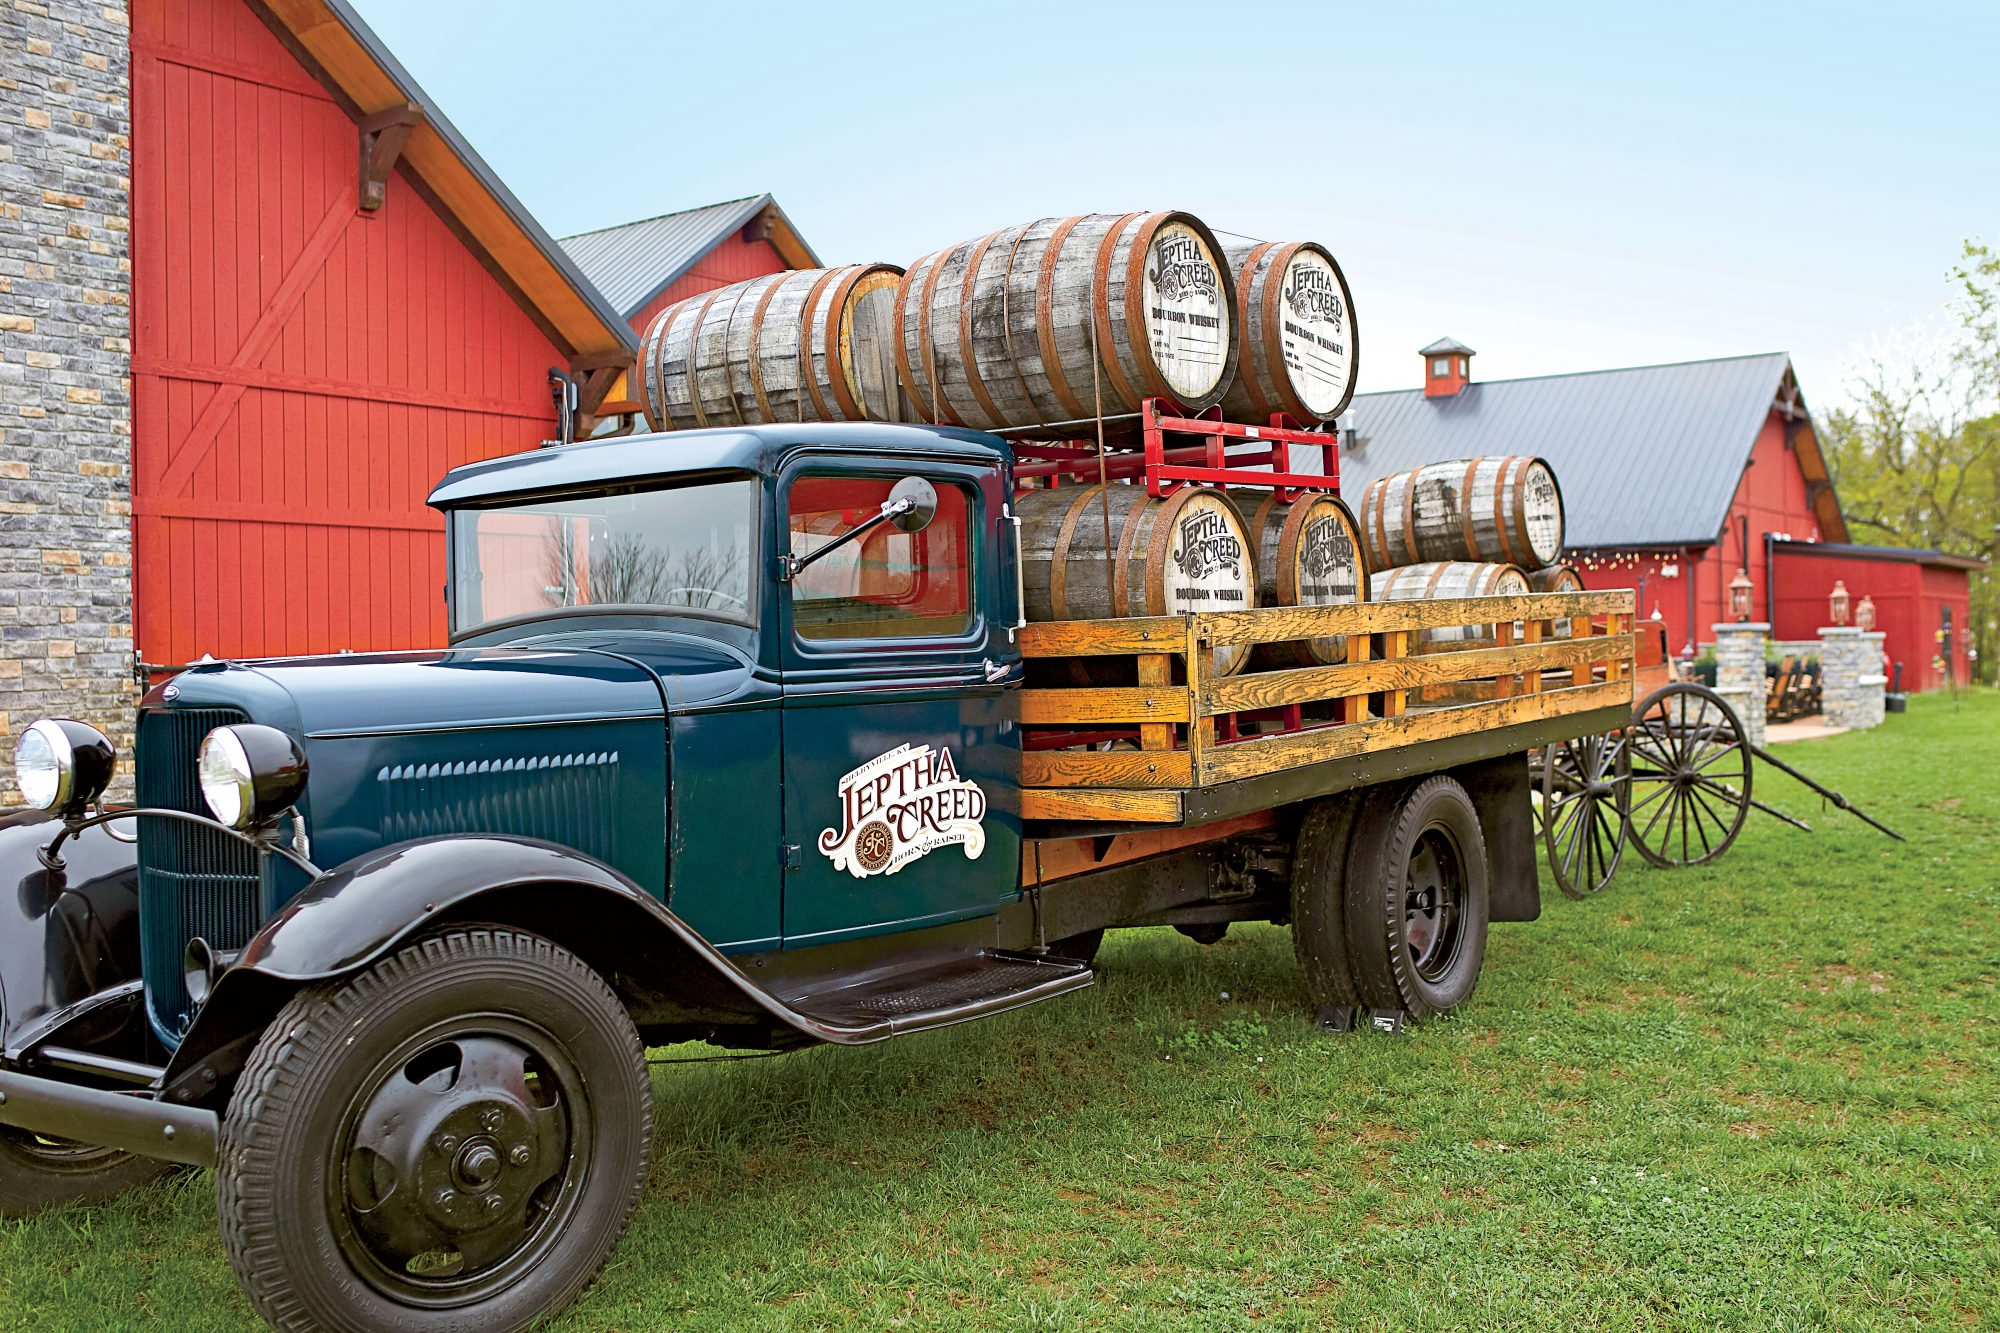 6. Kentucky Bourbon Trail